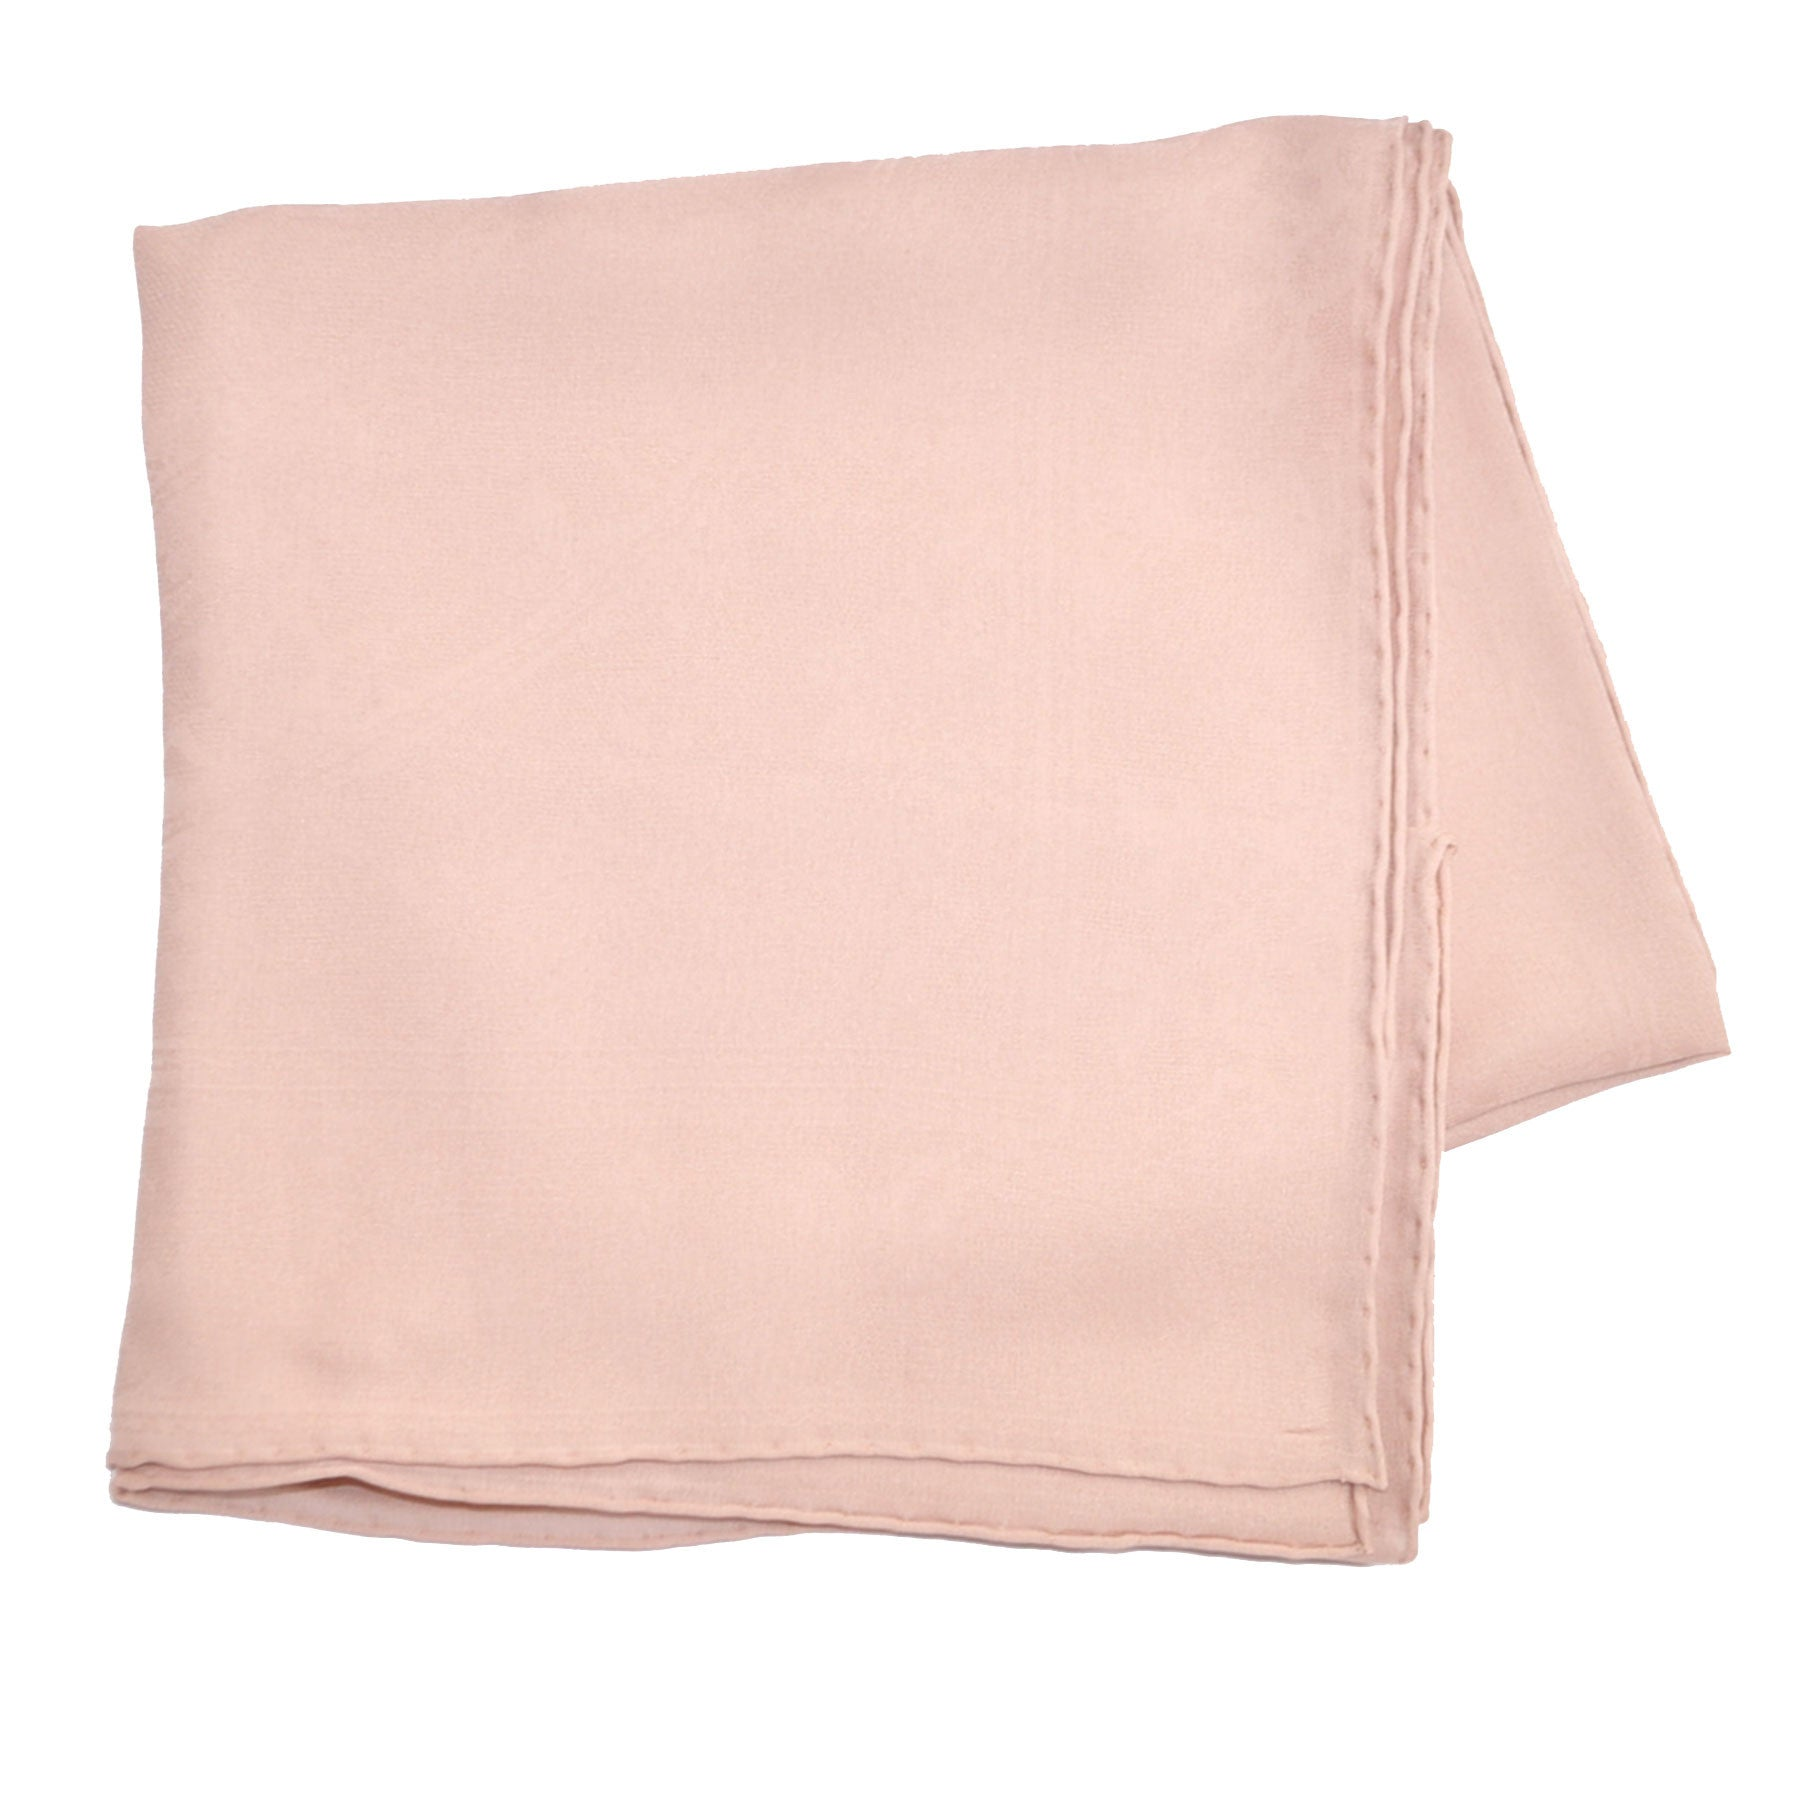 Elie Saab Scarf Light Pink Cream Monogram Chameleon